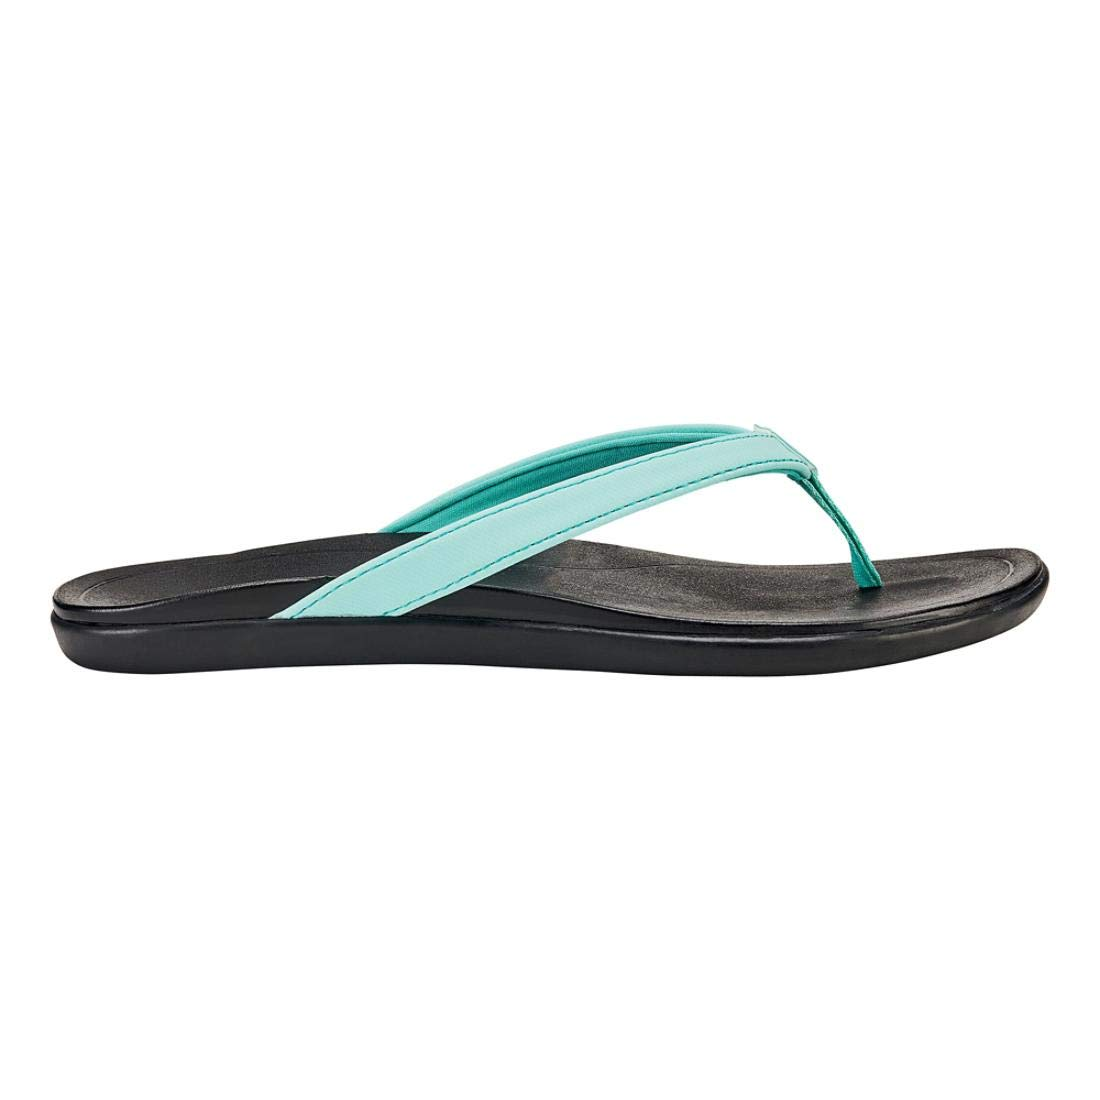 Lagoon Black OluKai Ho'opio Leather Sandal - Women's